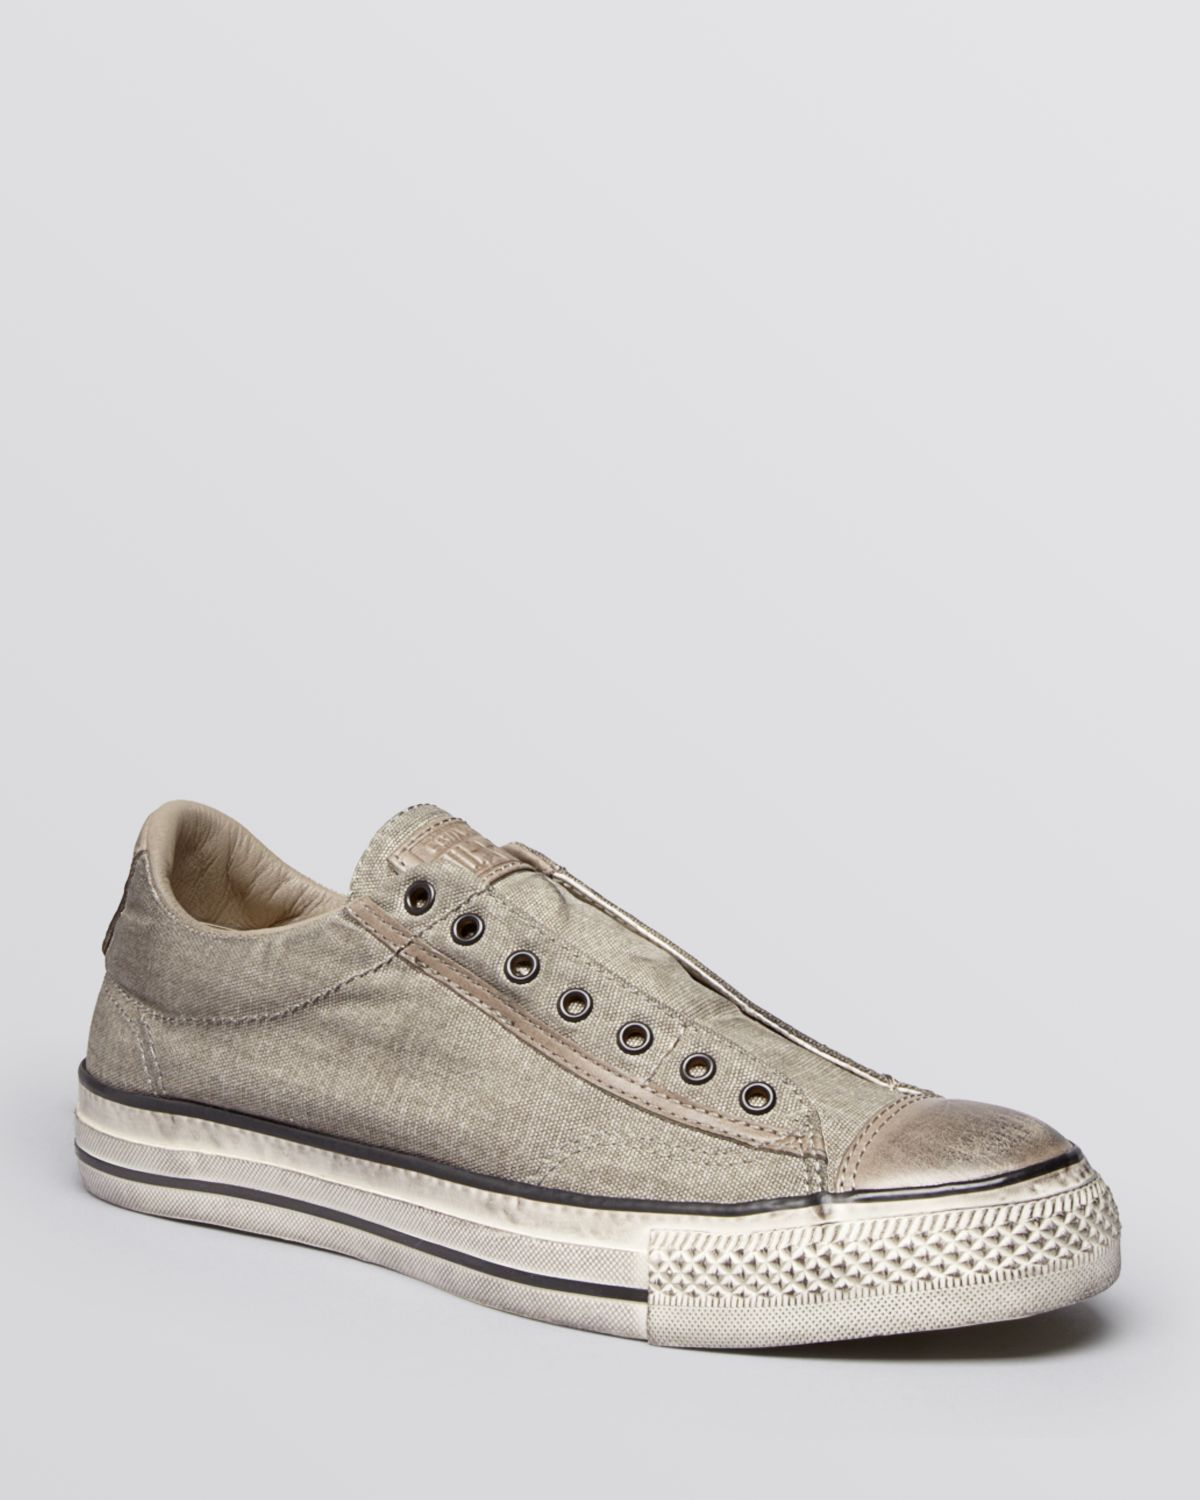 6449e4b13a16 Lyst - Converse Chuck Taylor All Star Laceless Sneakers in Gray for Men